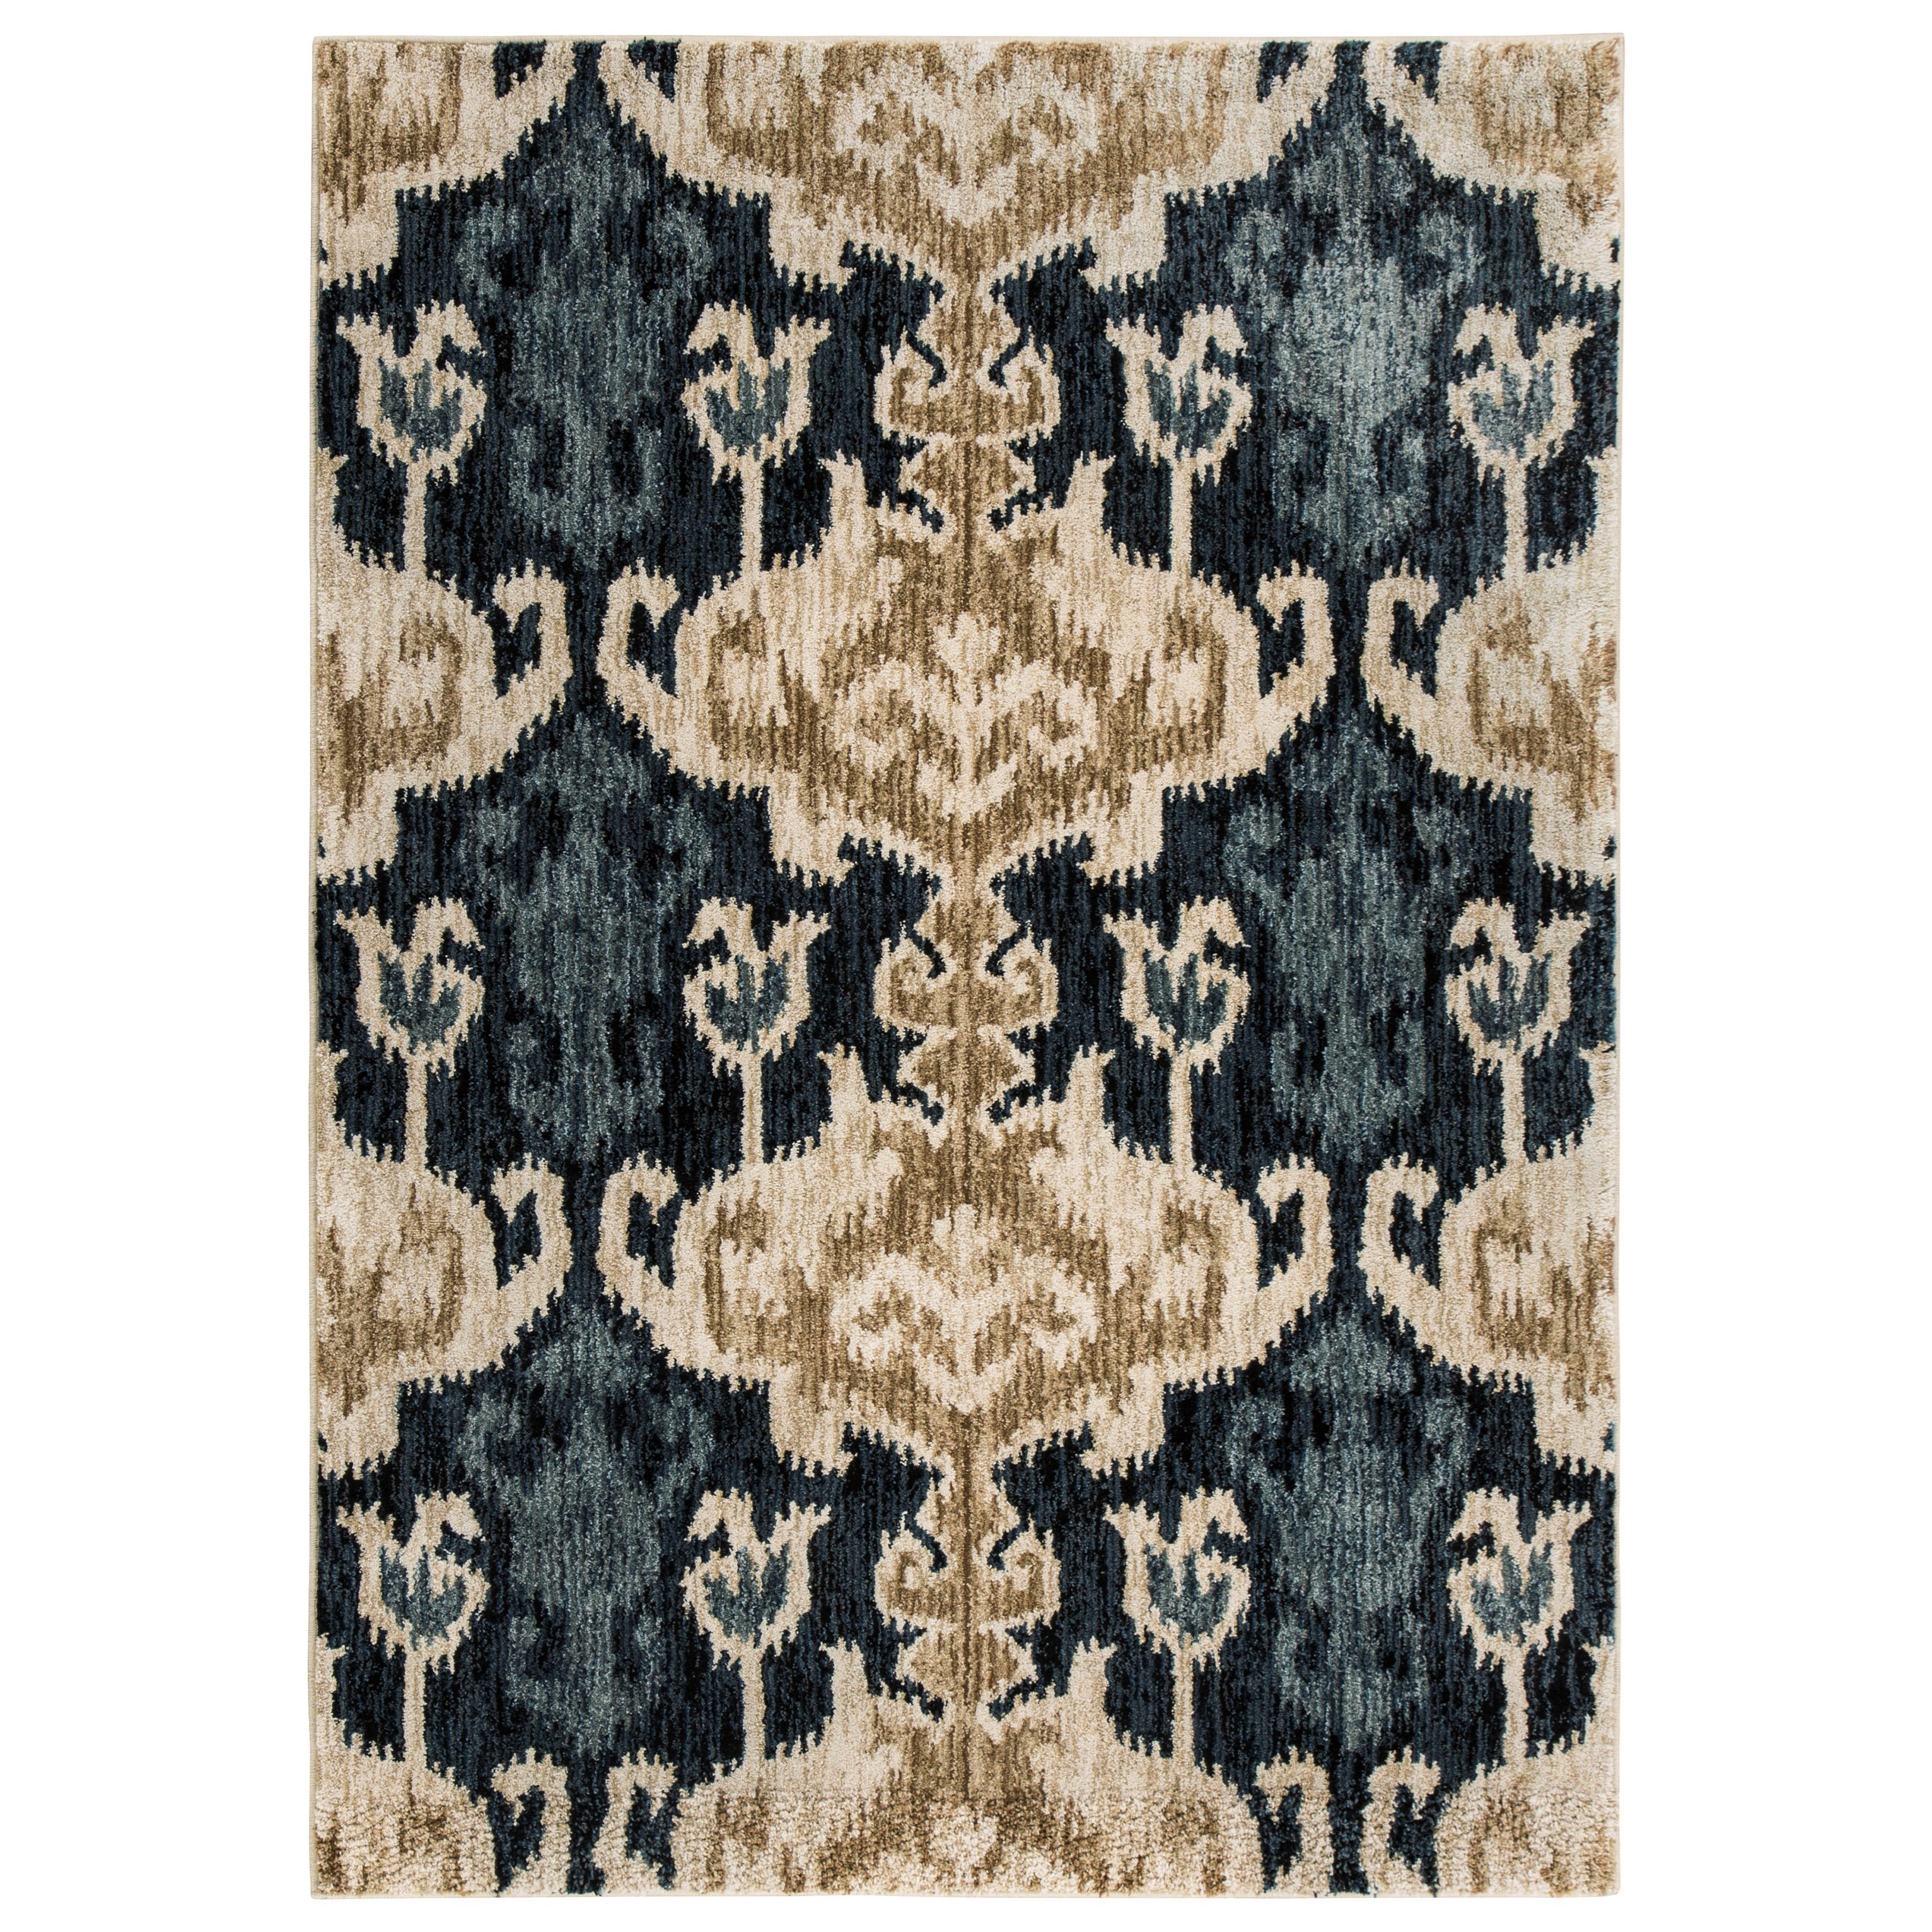 Signature Design by Ashley Transitional Area Rugs Saville Blue/Brown Large Rug - Item Number: R402731